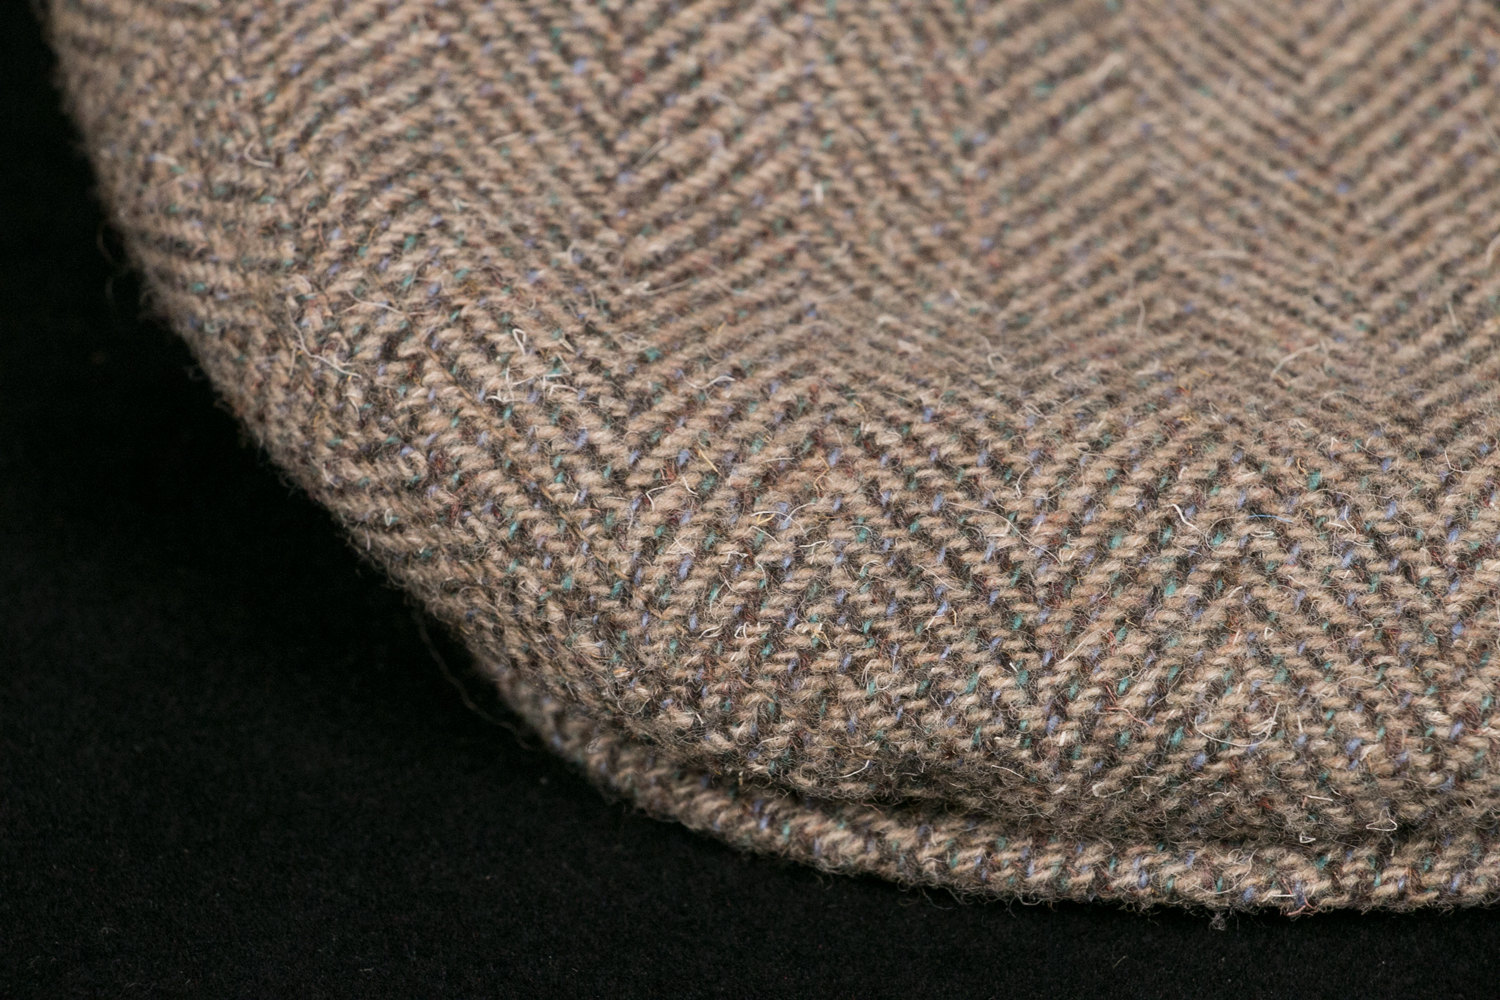 "Vintage 1970's Pendleton Wool Tweed Flat Cap - Houndstooth, Newsie Cap, Beige, Large 7 1/4, 7 3/8, 23""-23 3/8"""